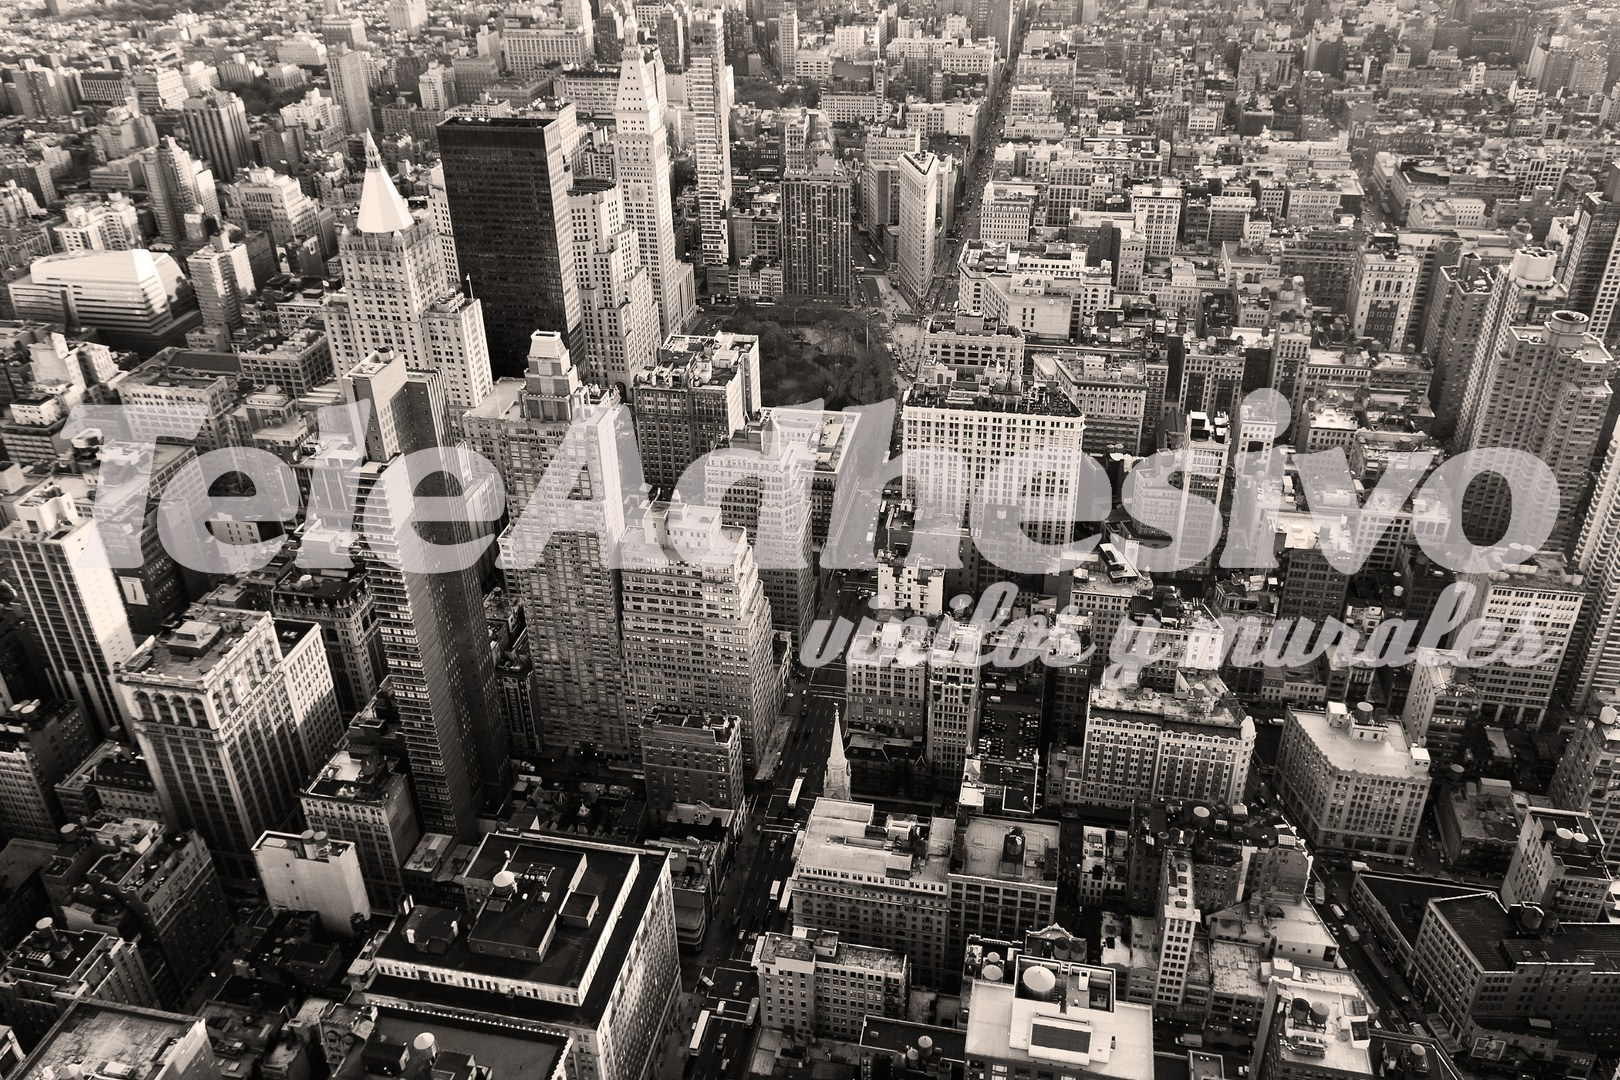 Fototapeten: New York Skyscrapes